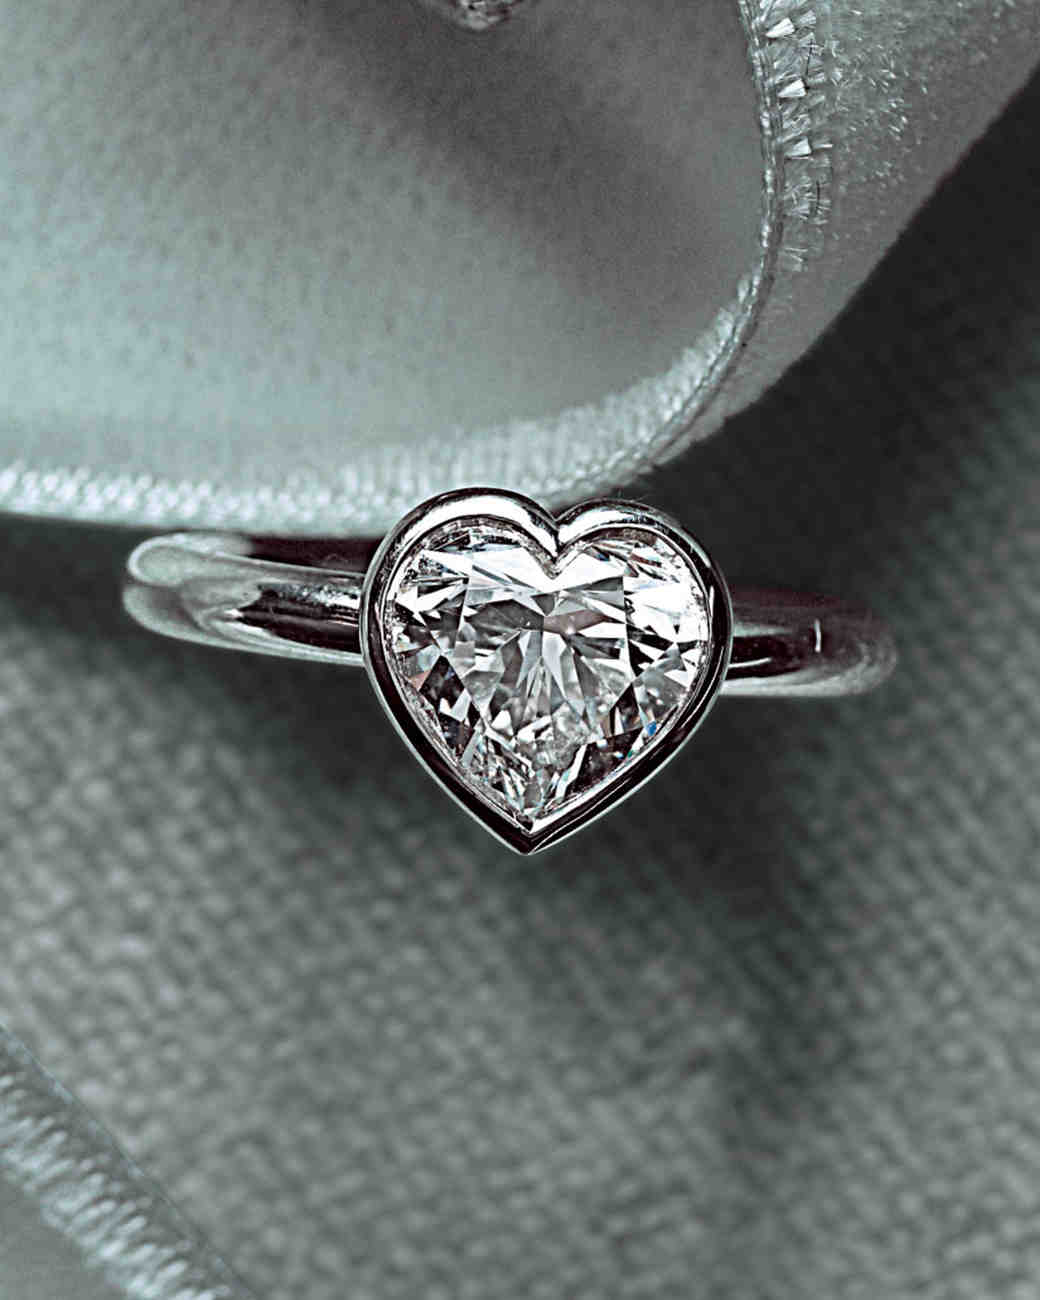 HeartShaped Engagement Rings Martha Stewart Weddings